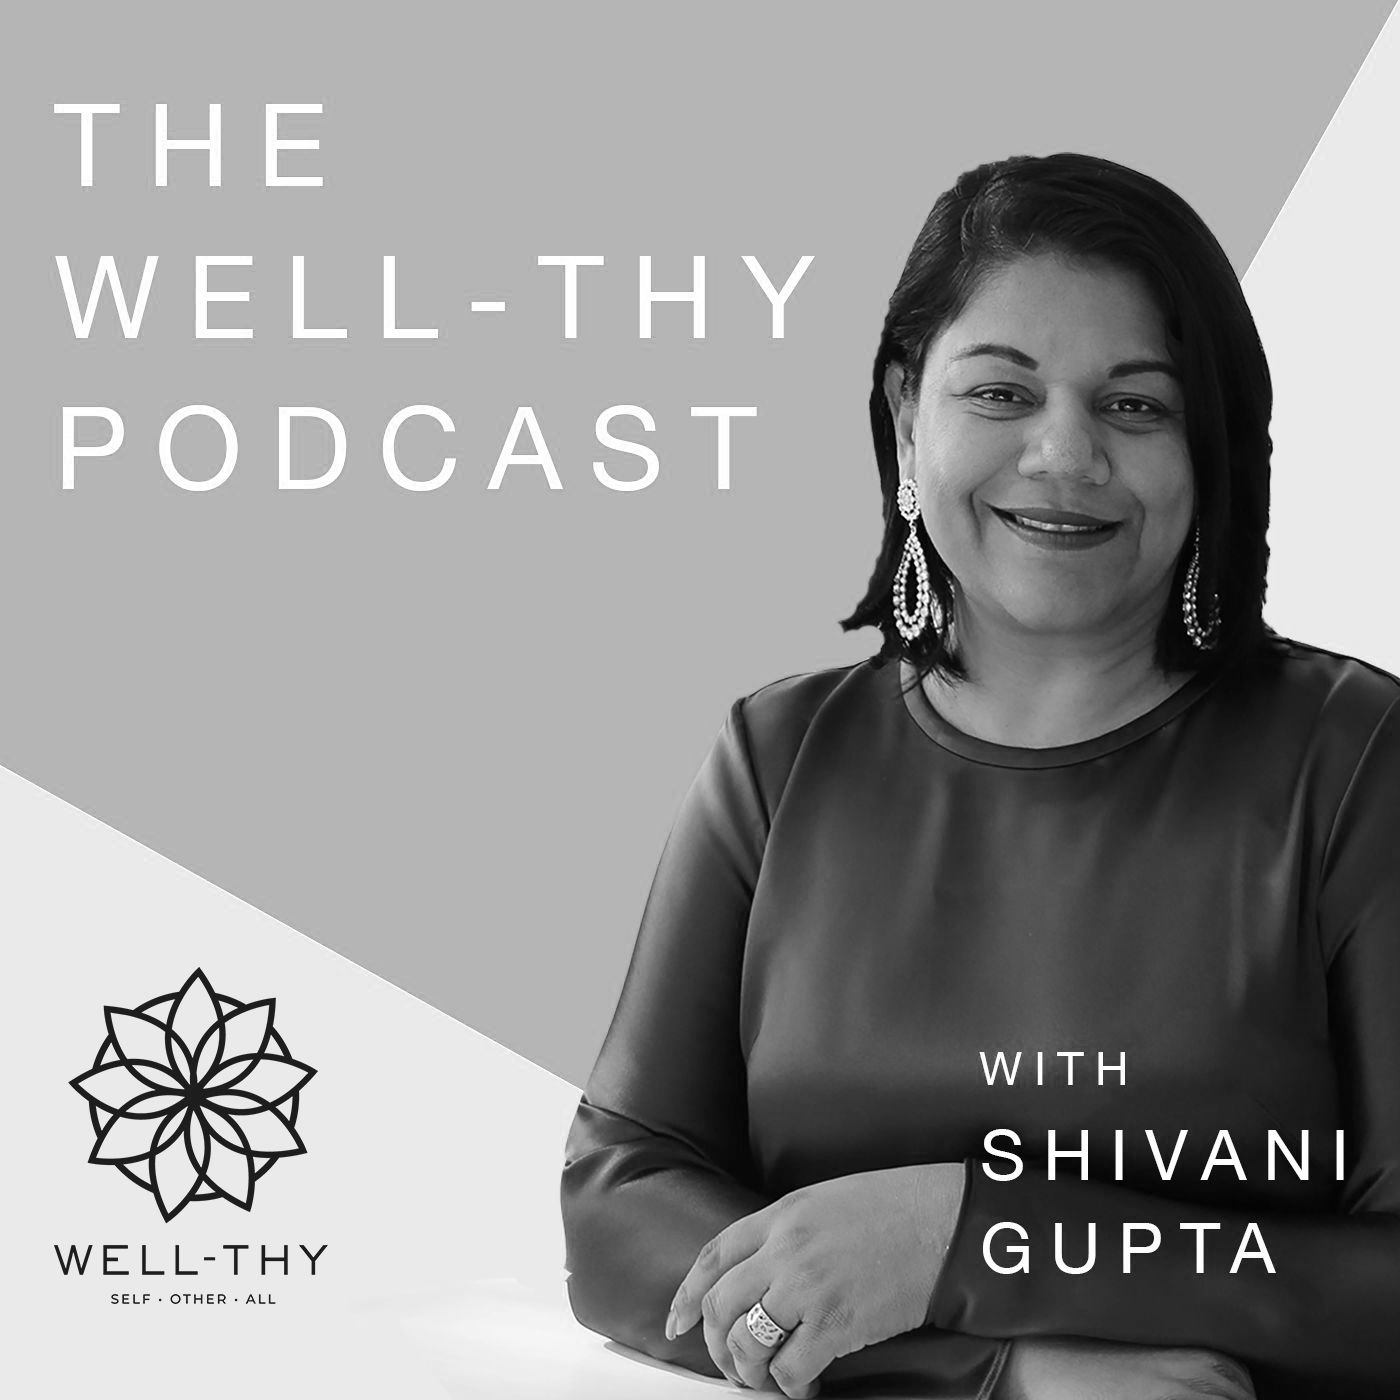 Tina Tower Well-thy podcast